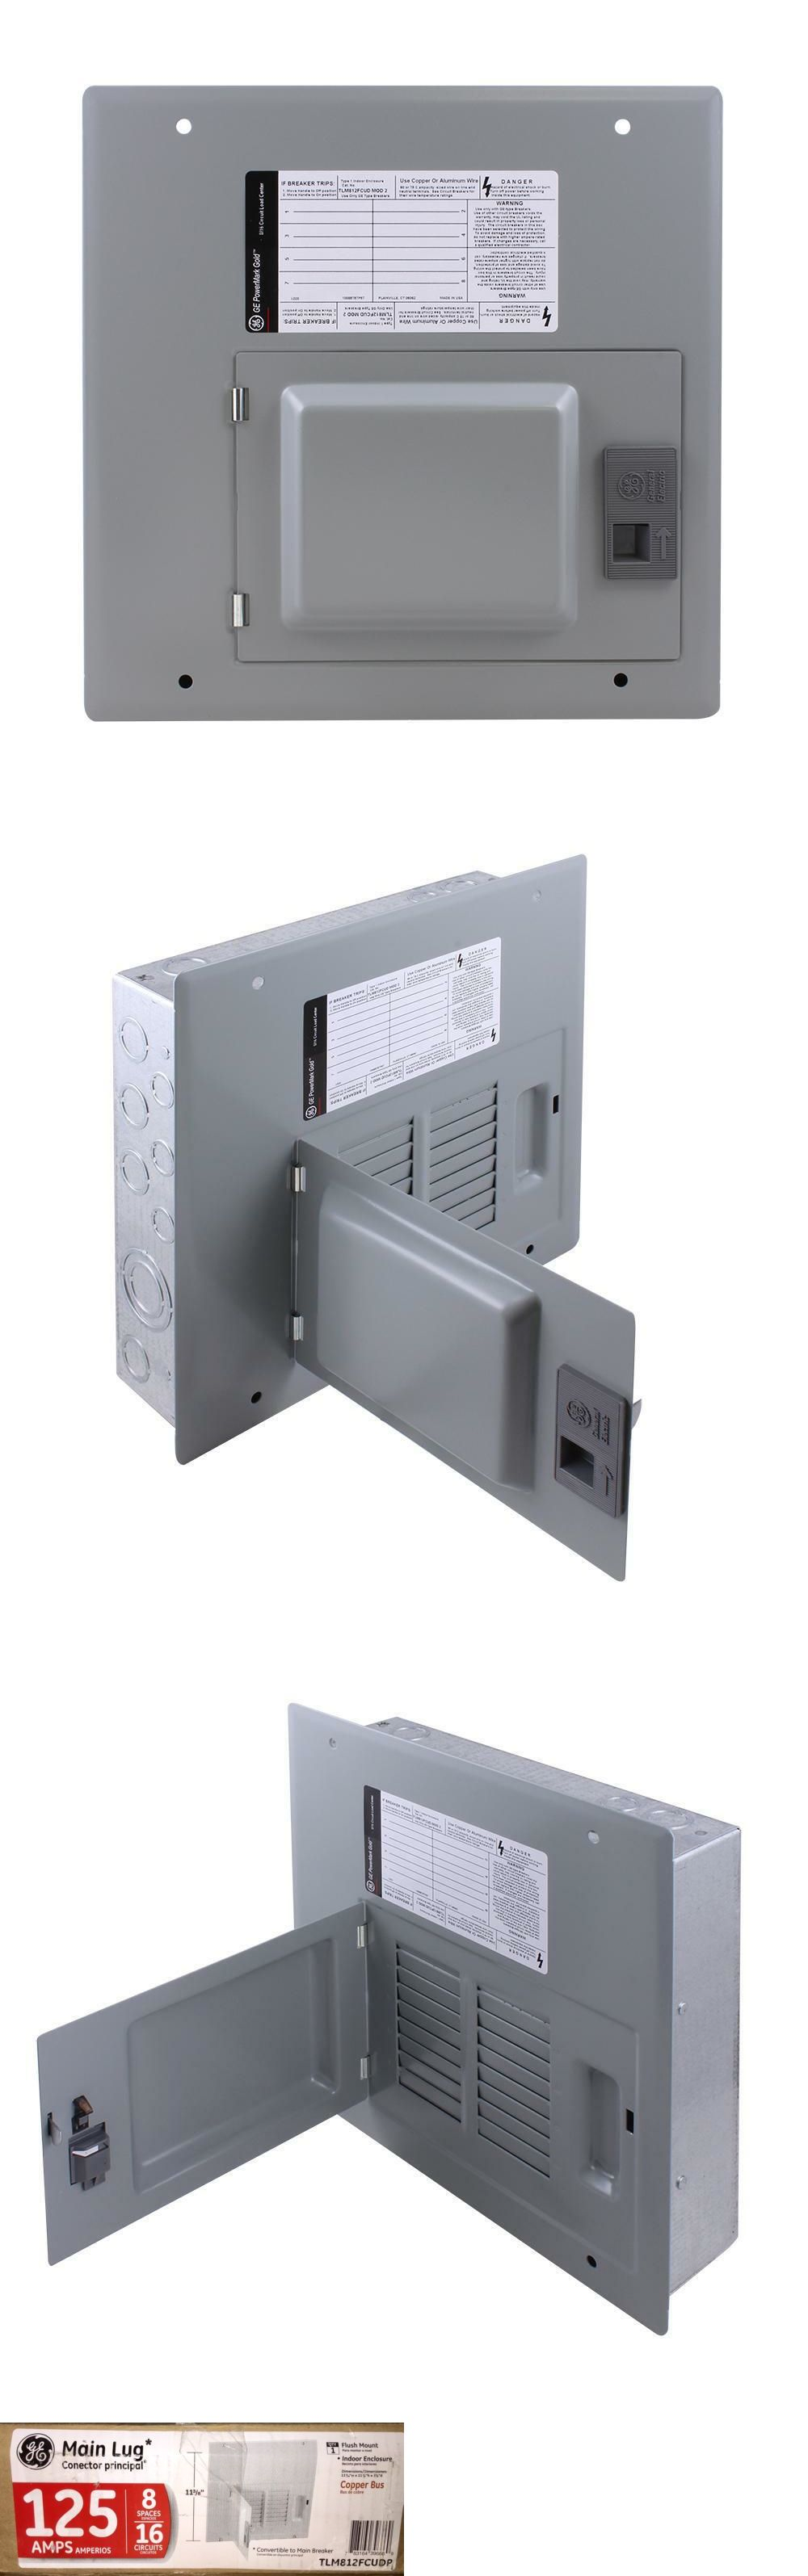 hight resolution of 125 amp fuse box wiring diagram centre125 amp fuse box manual e bookcircuit breakers and fuse